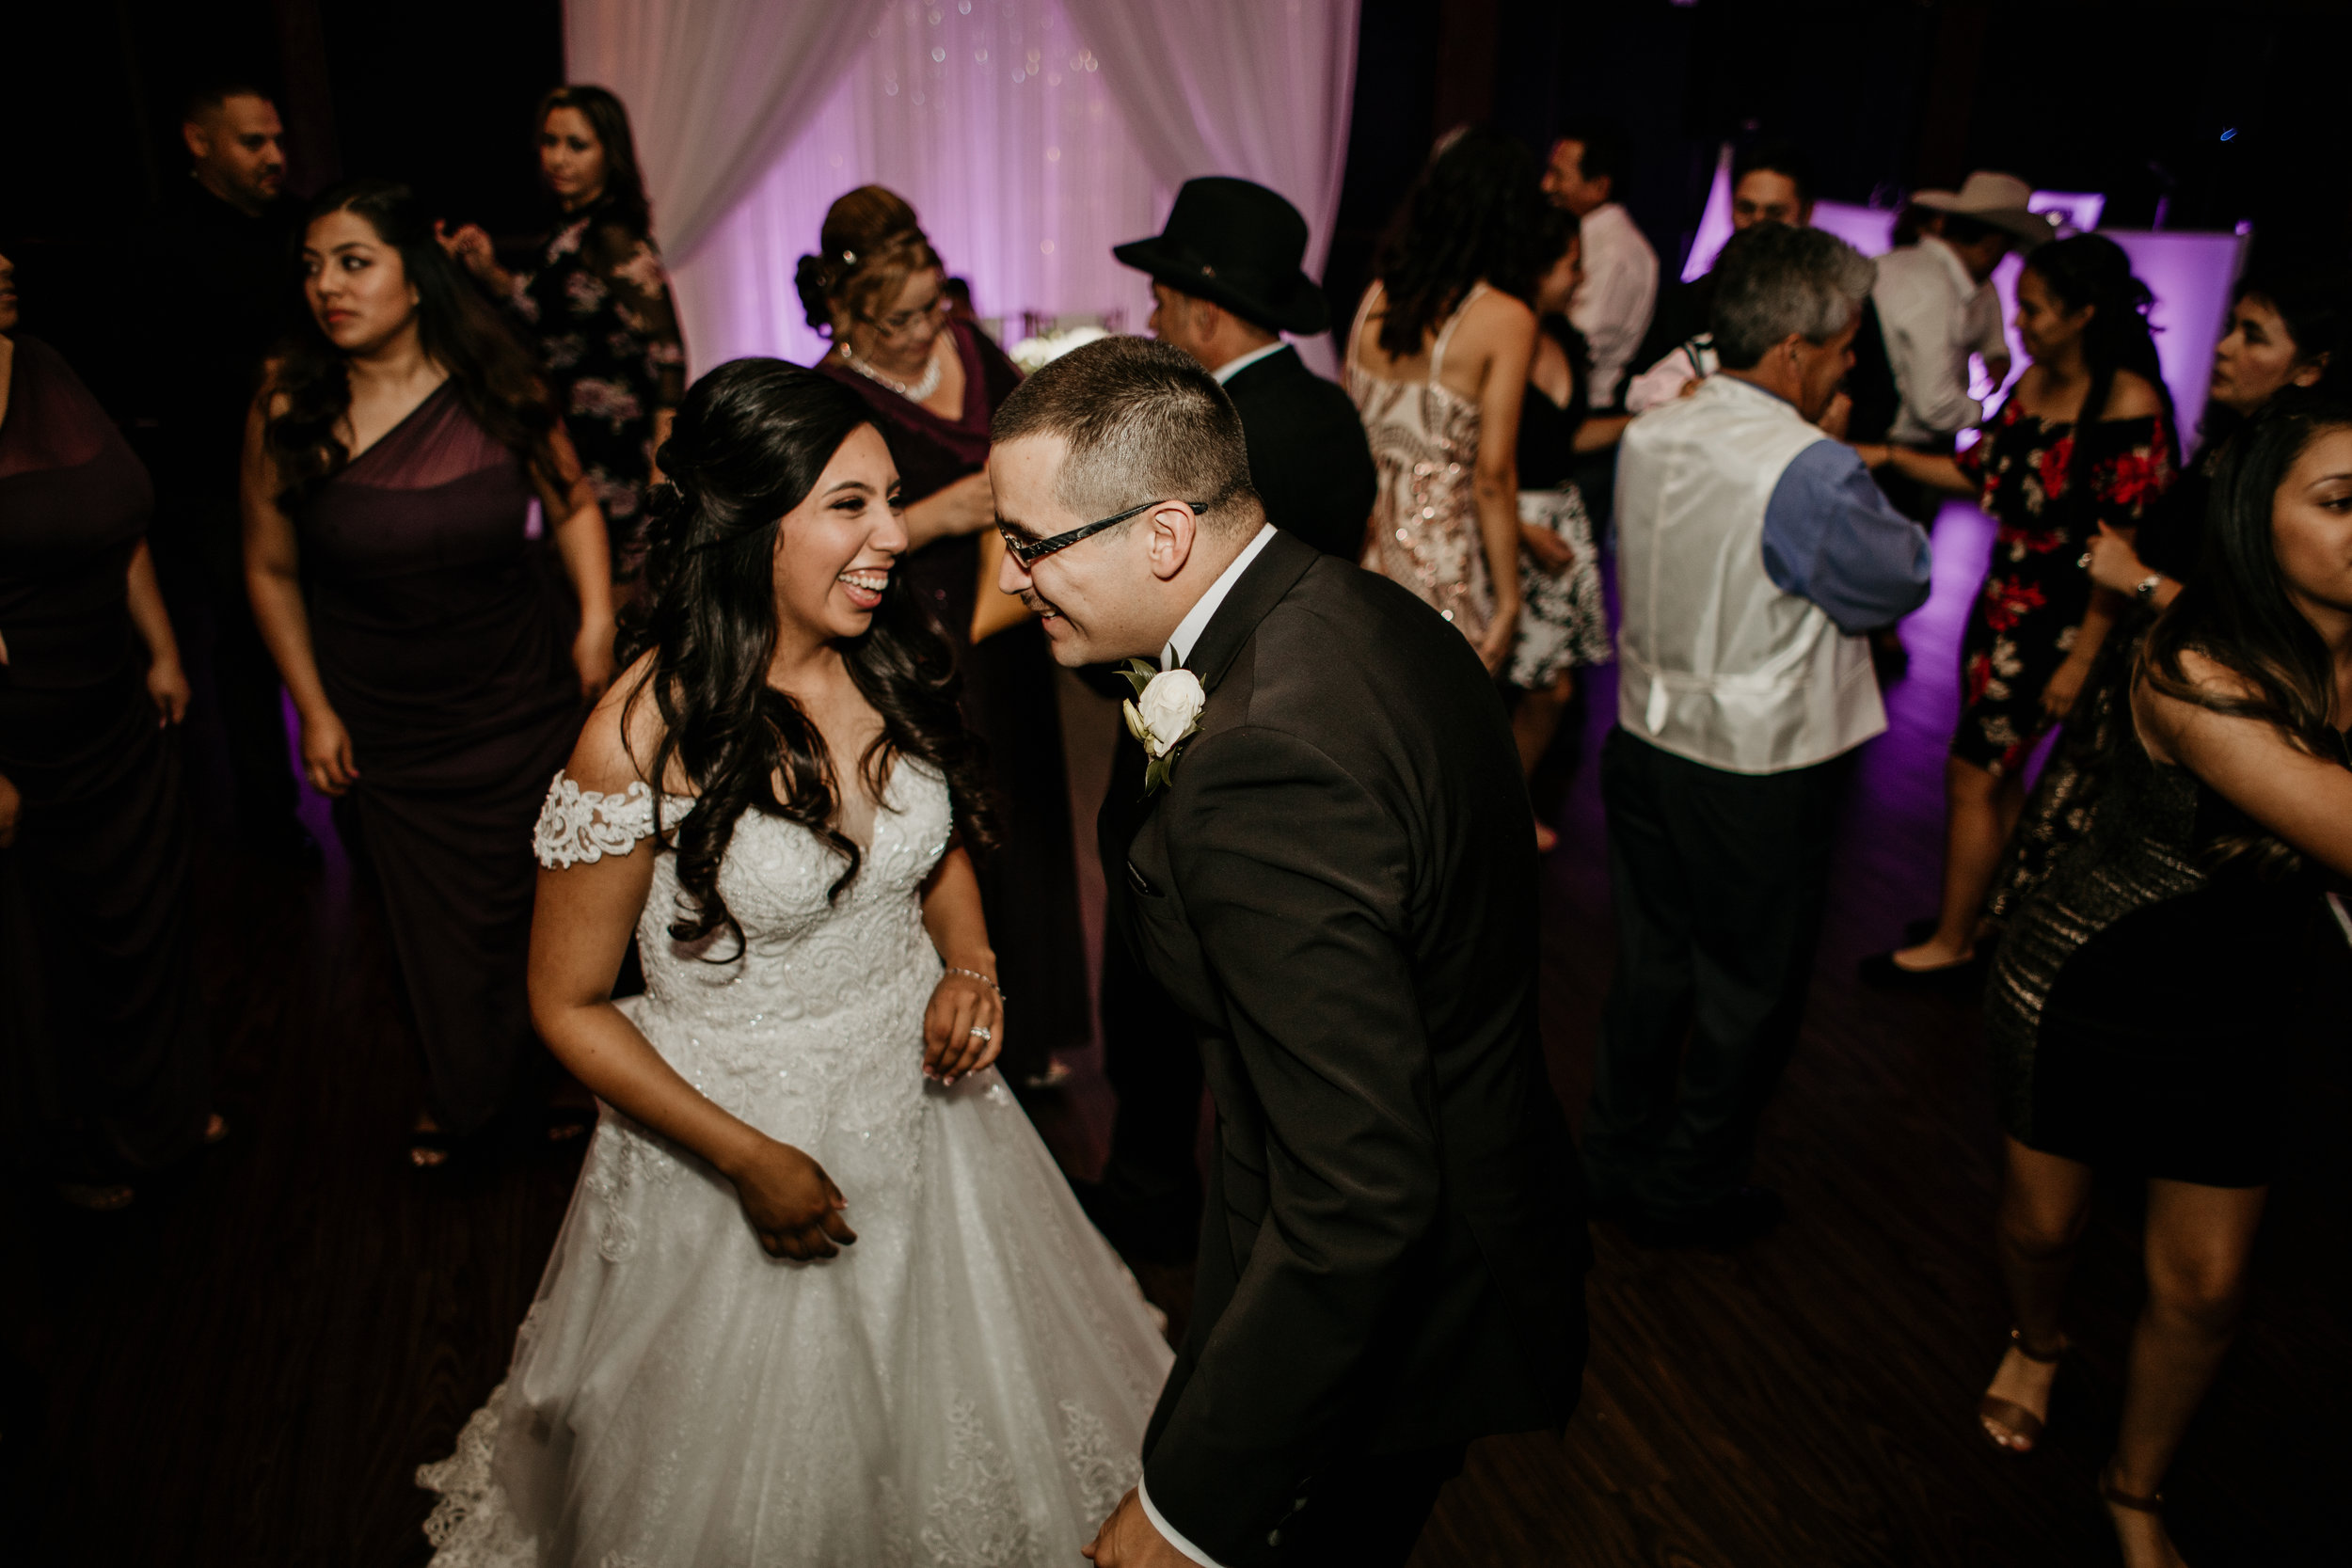 Our Wedding-129.jpg